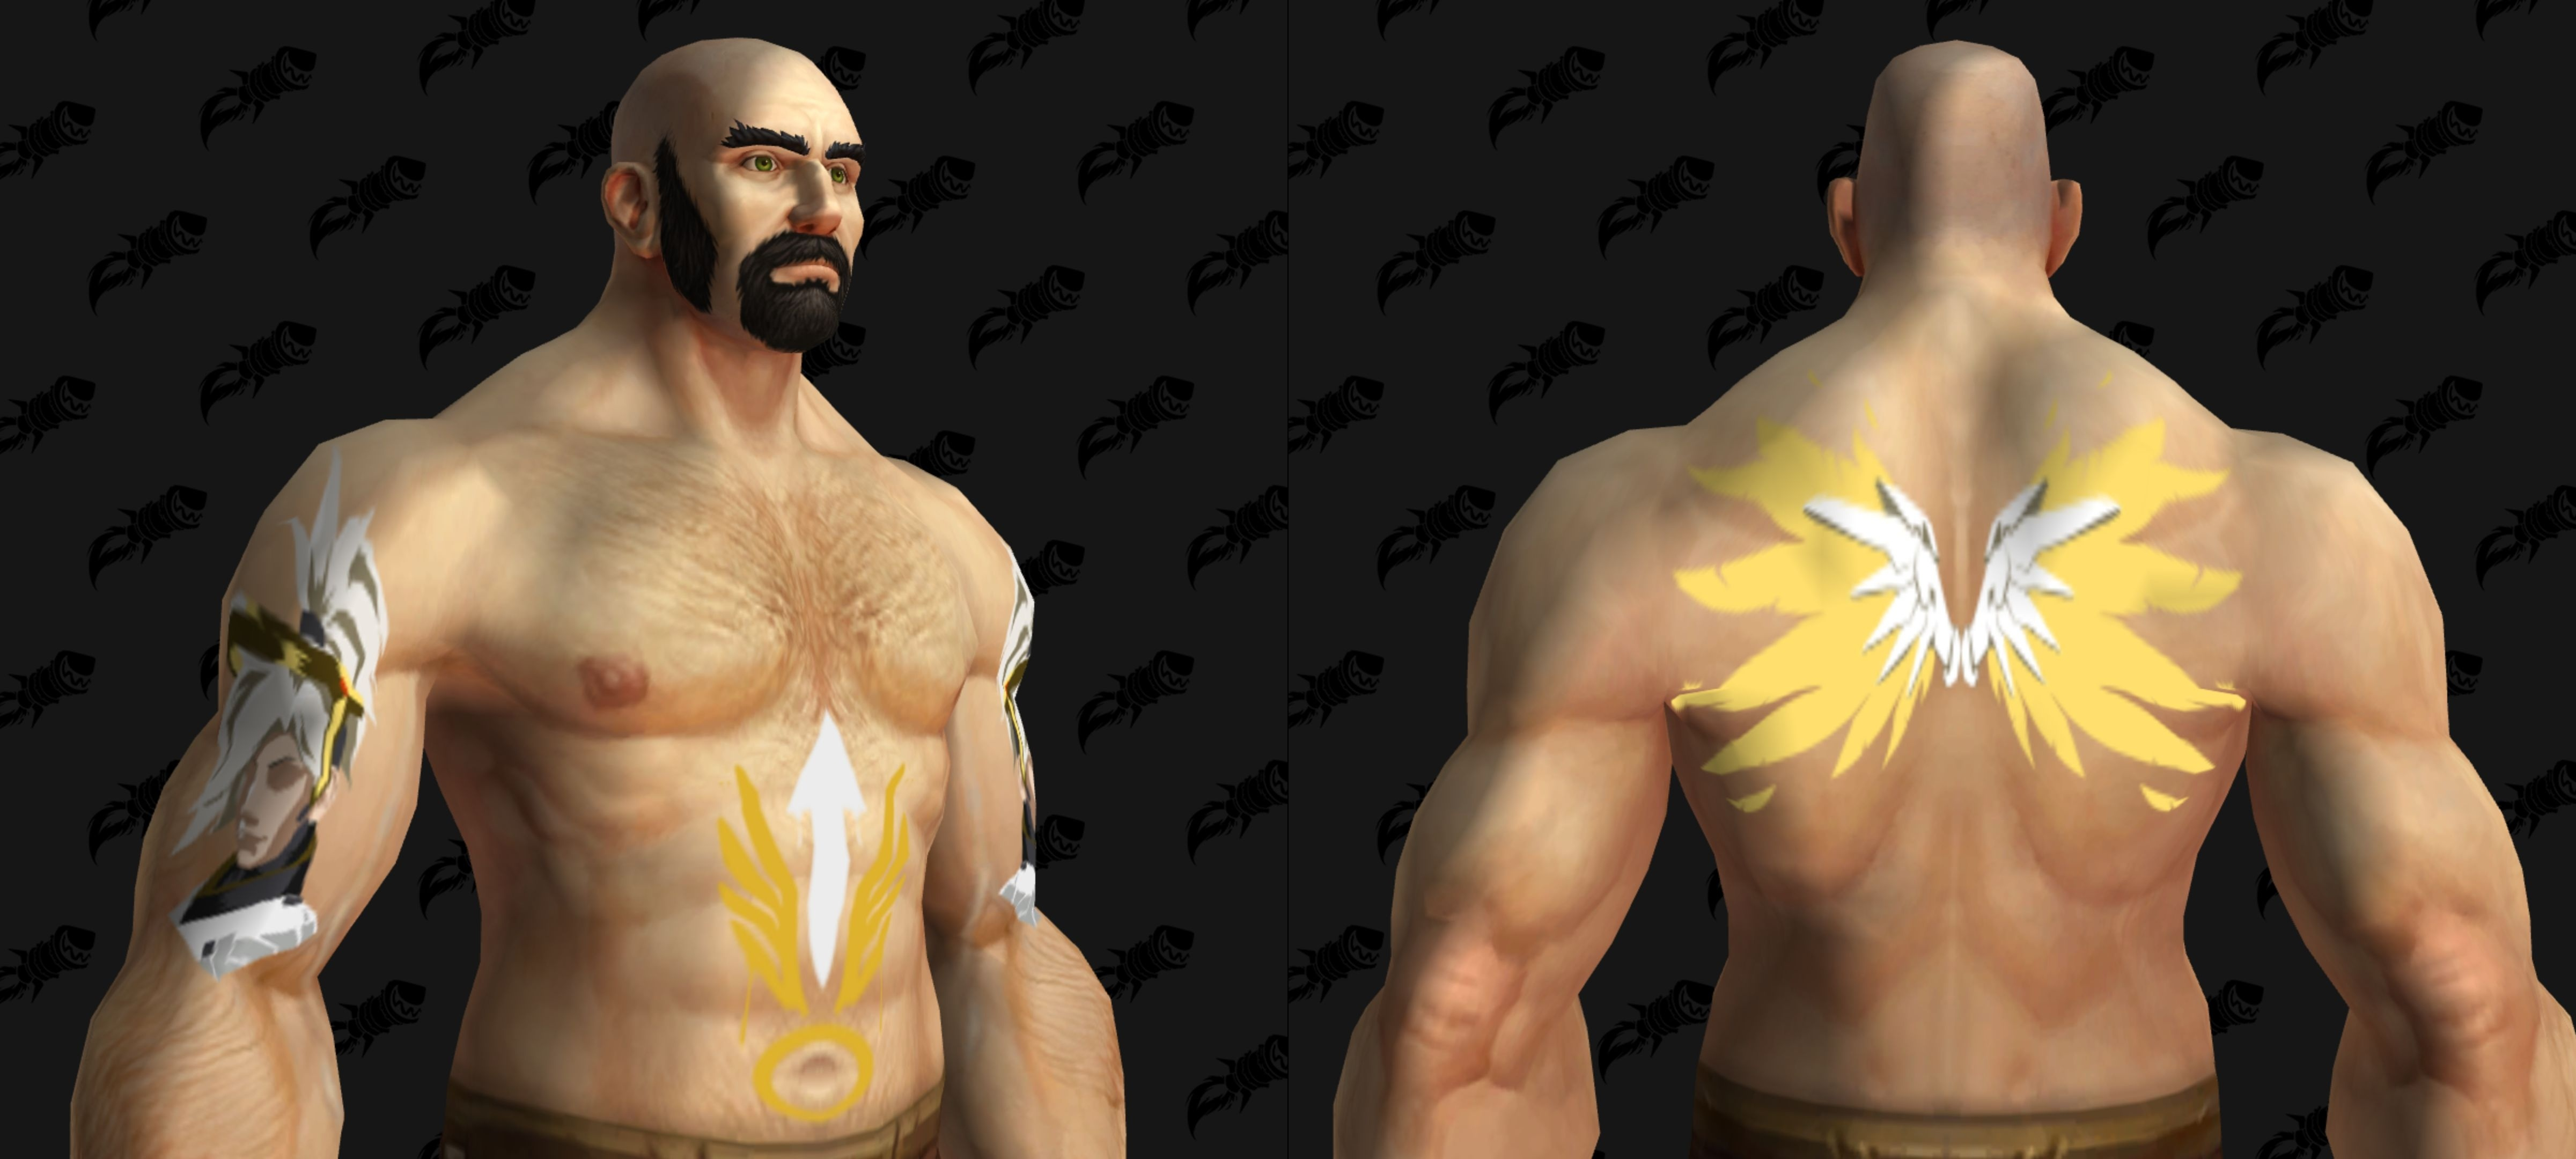 60b8958d4 Try out these tattoos and design the perfect transmog around them in the  Wowhead Dressing Room!